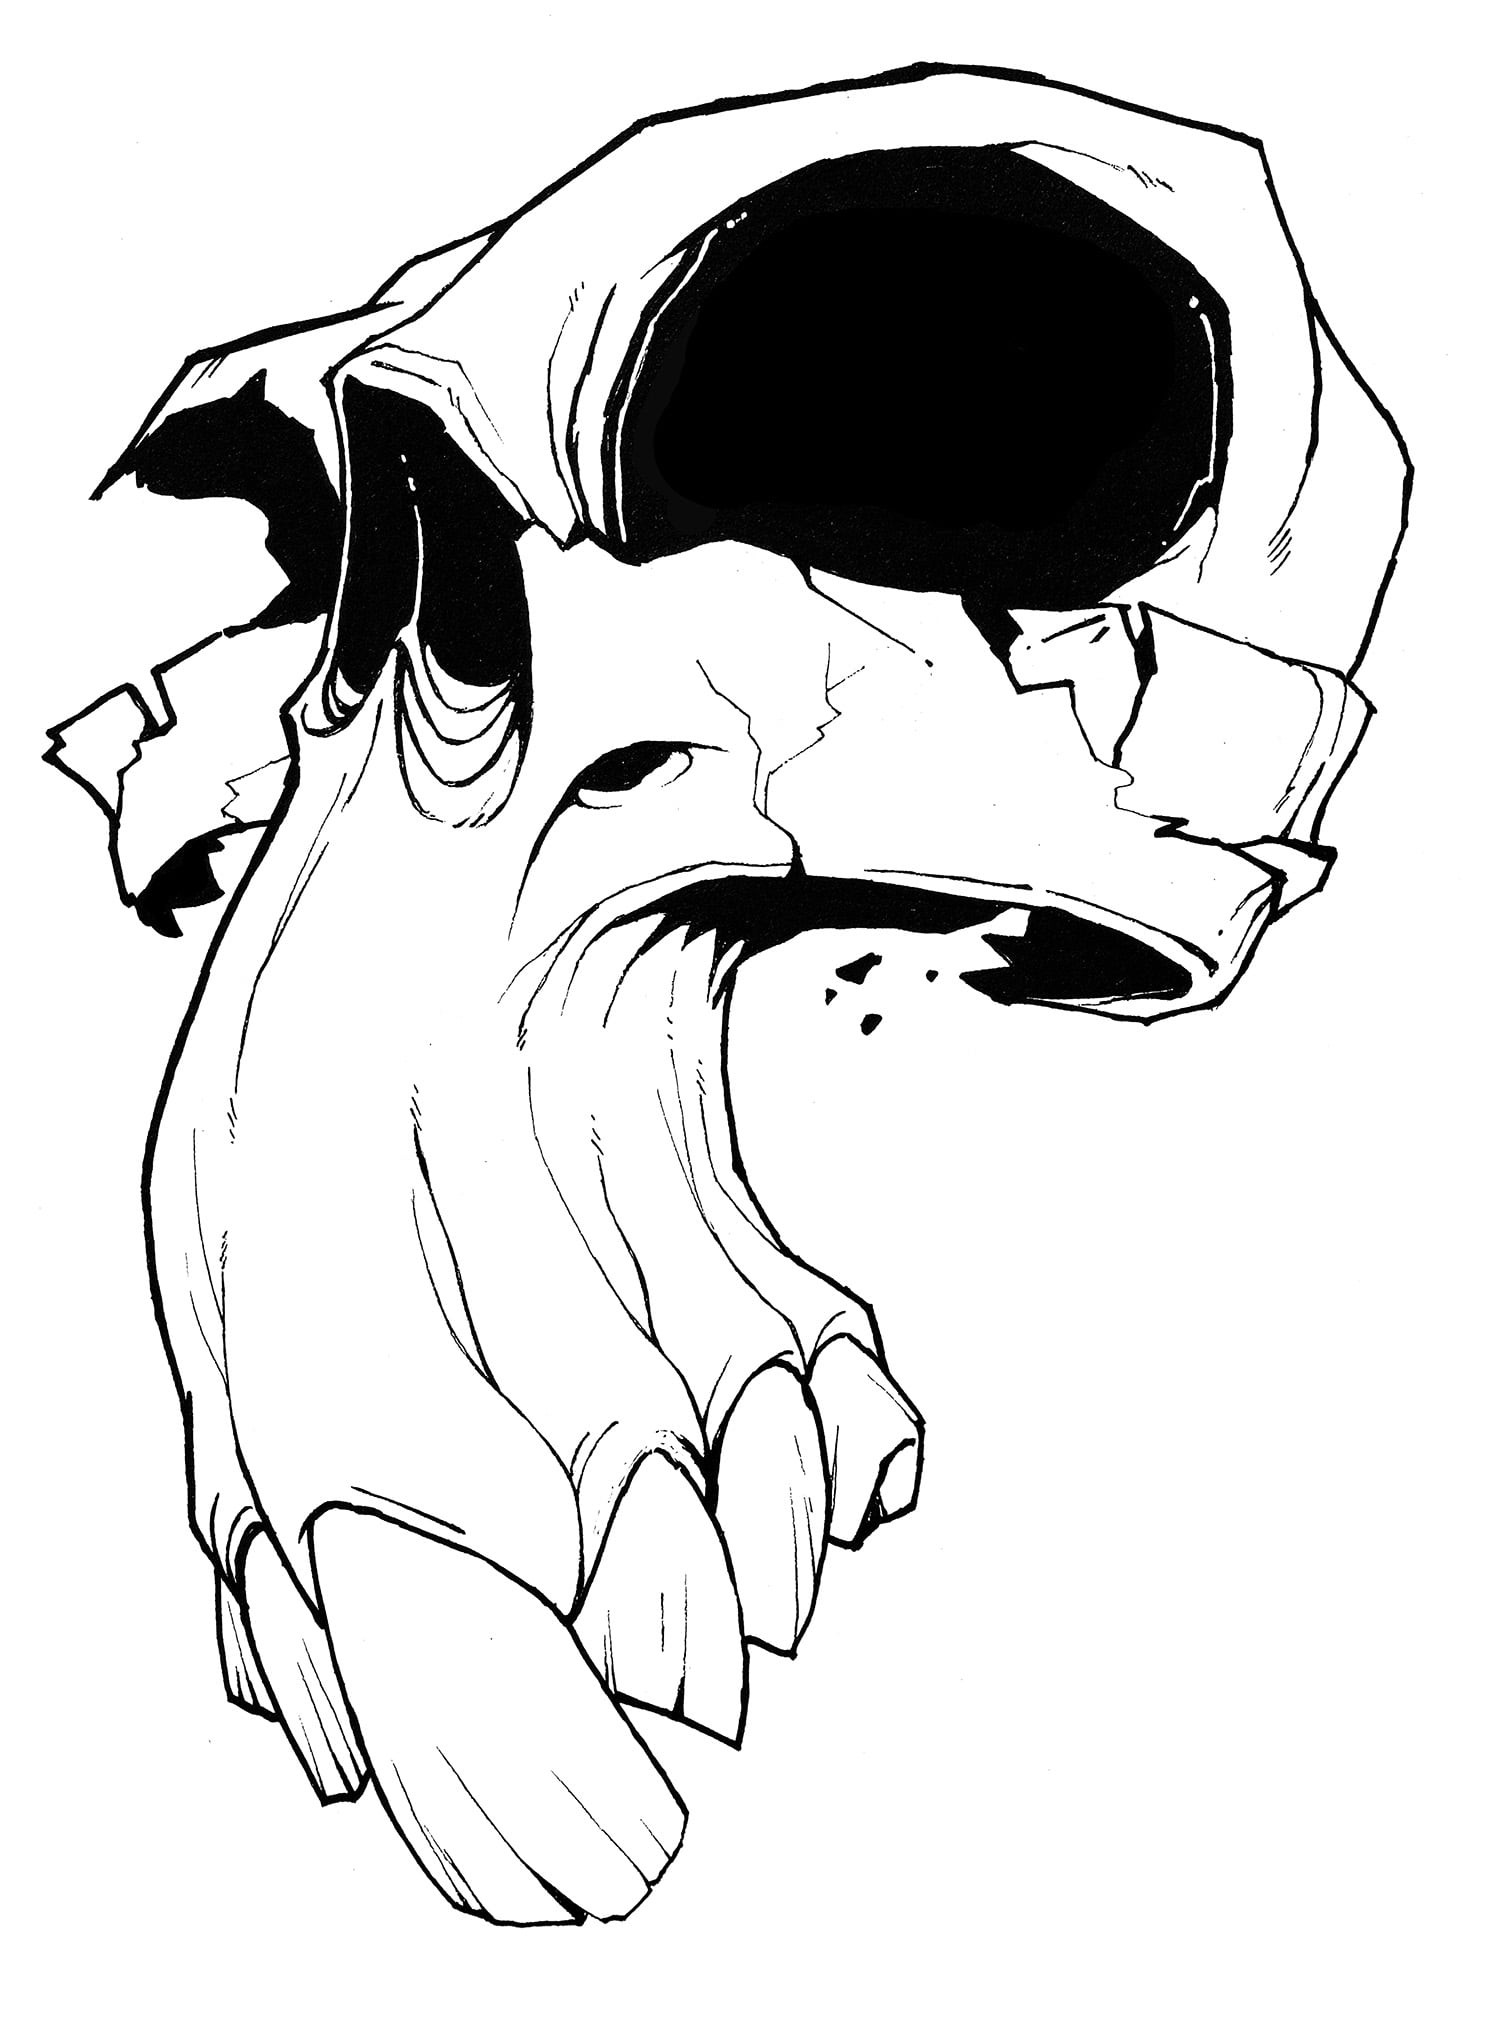 Funny strange monster skull